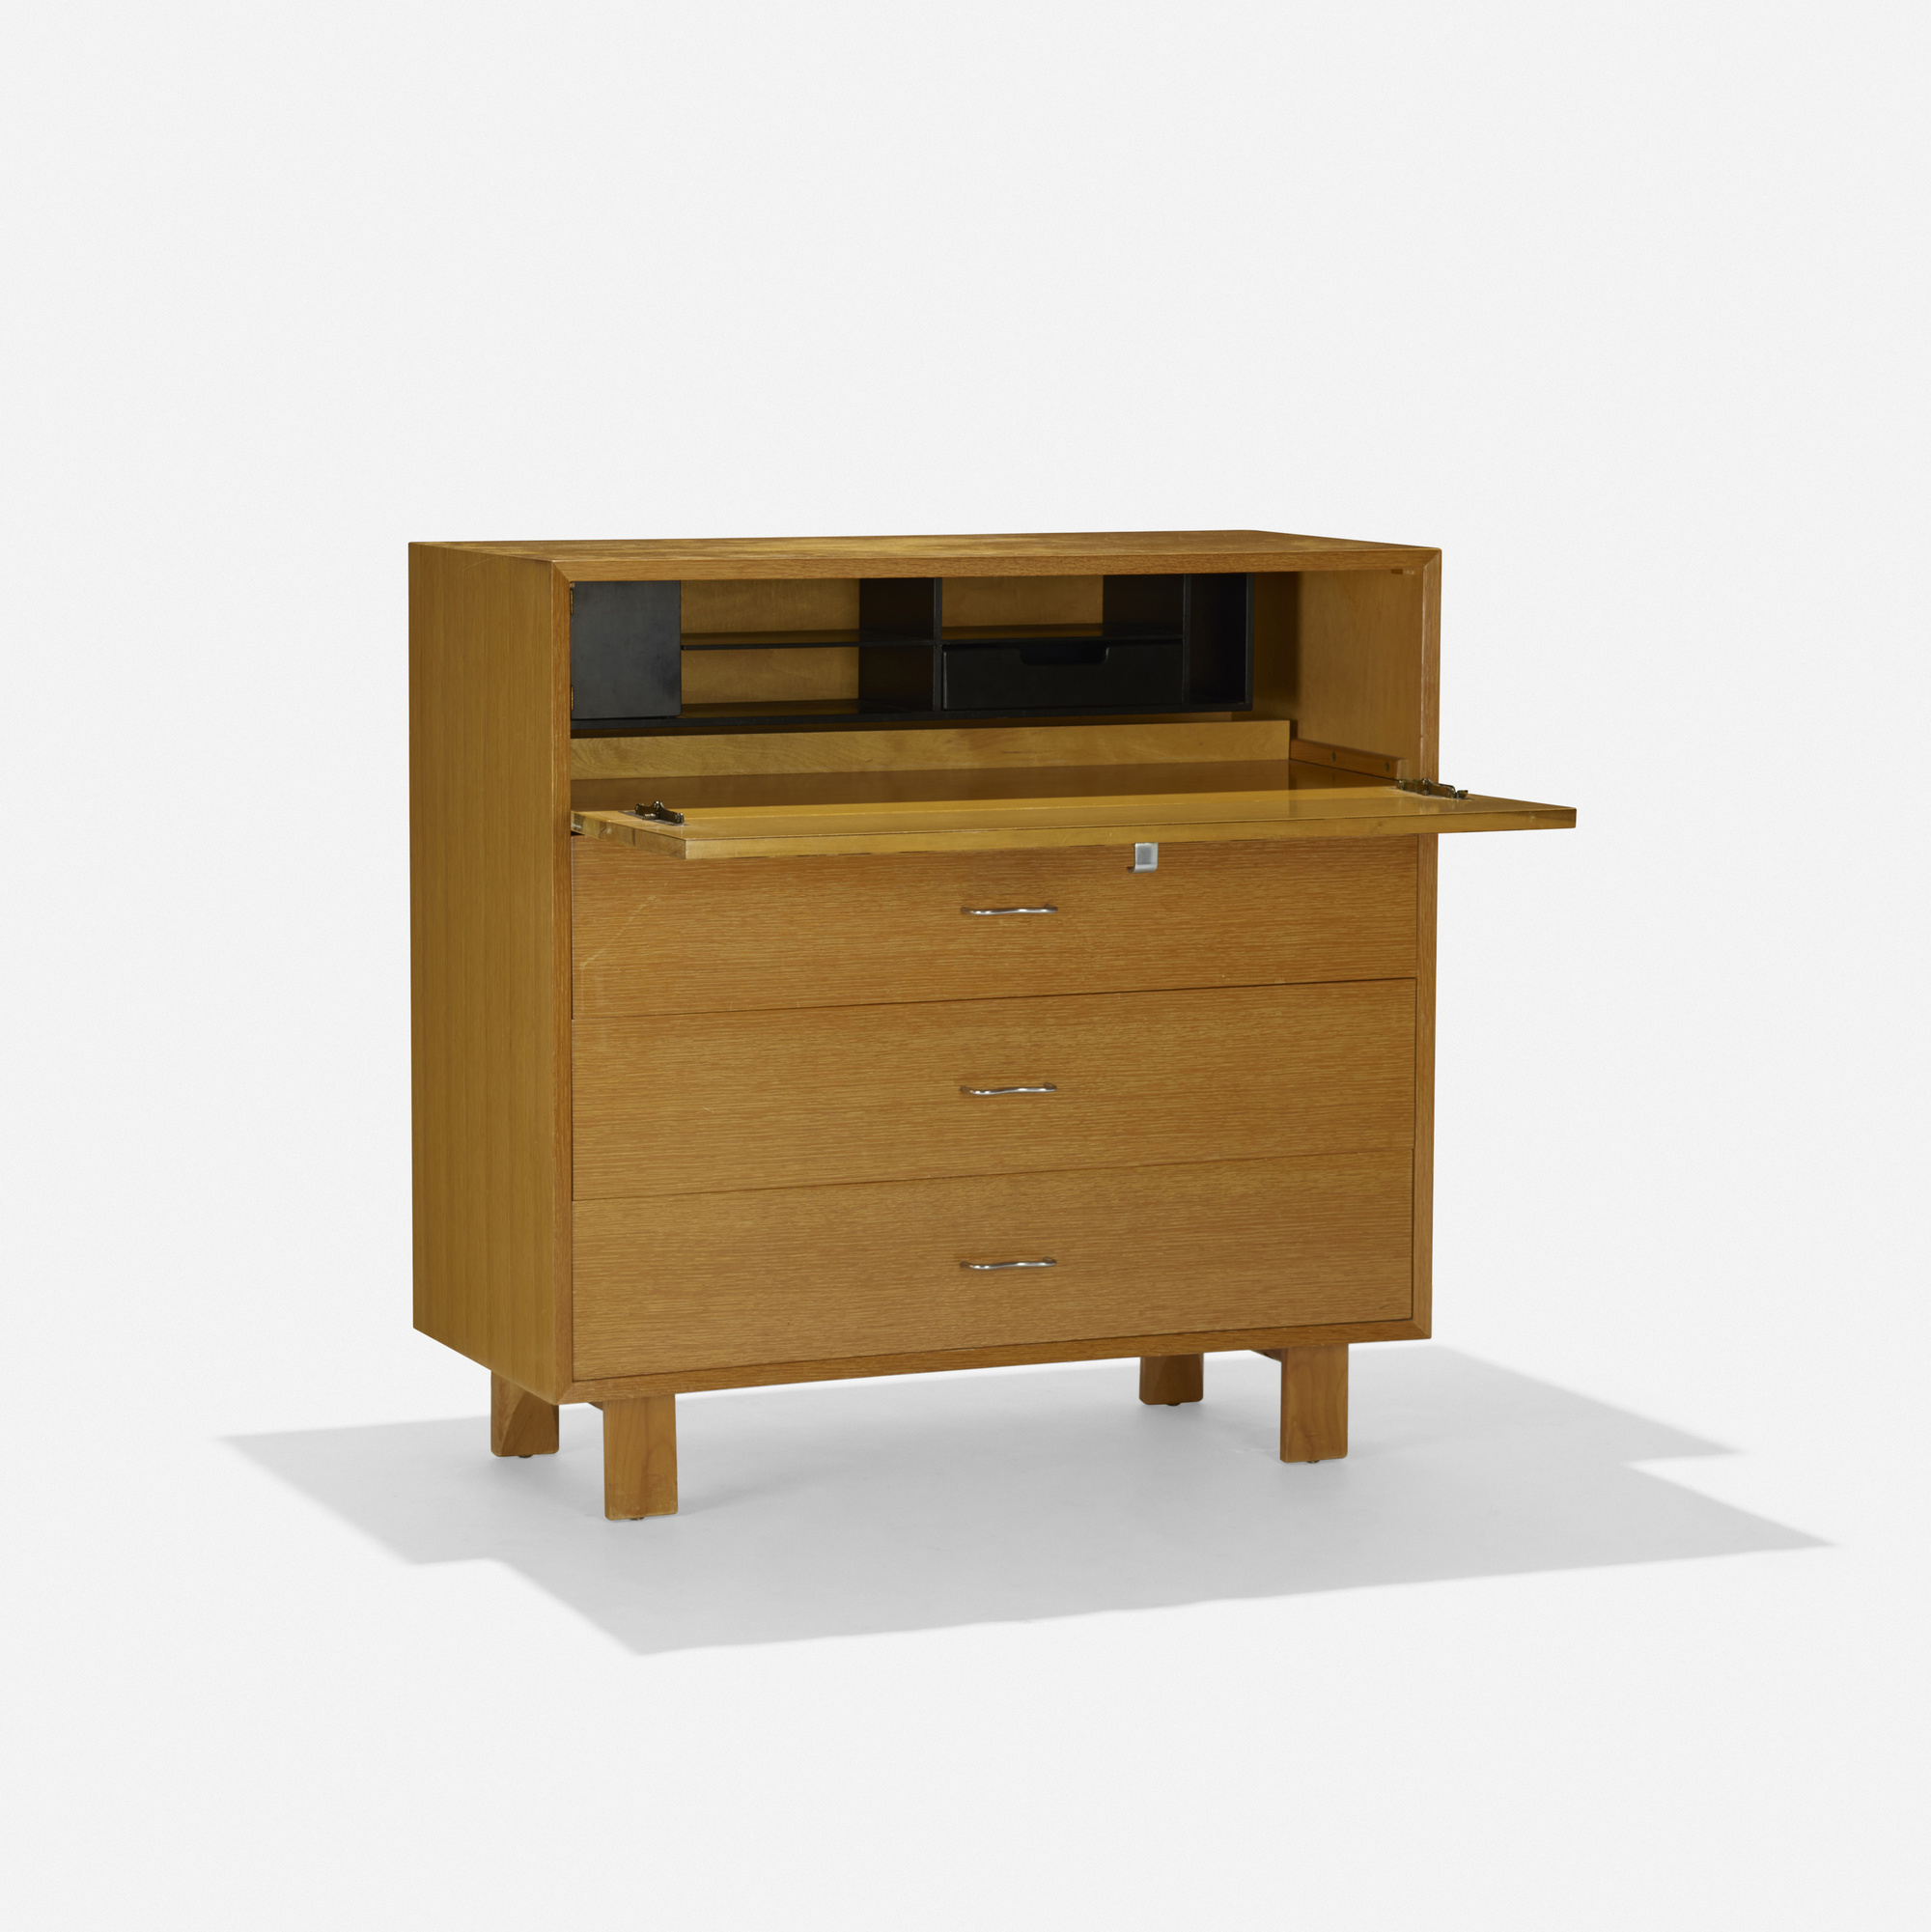 234: George Nelson & Associates / cabinet, model 4623 from the Basic Cabinet series (3 of 3)